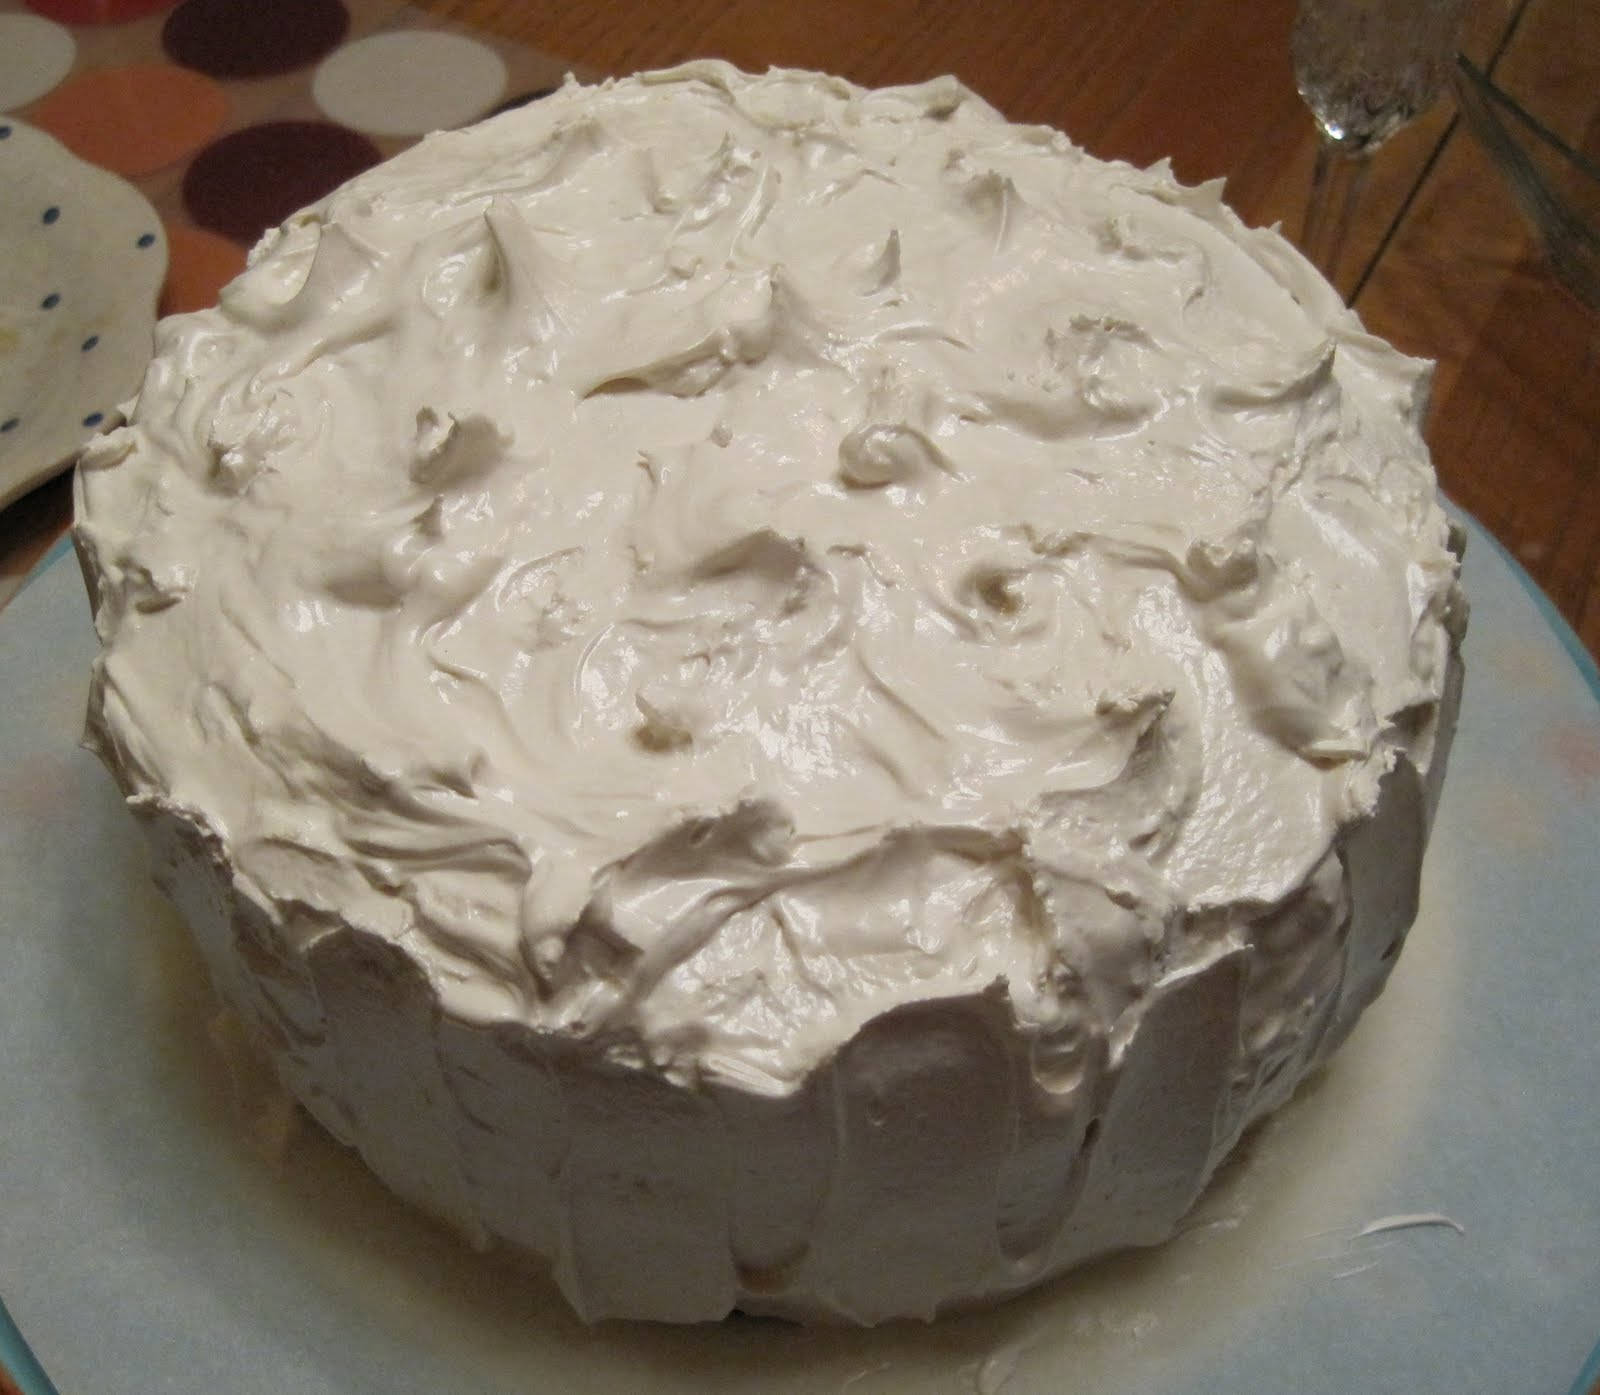 Gluten Free Kitchen: Chocolate Cake with Marshmallow Frosting